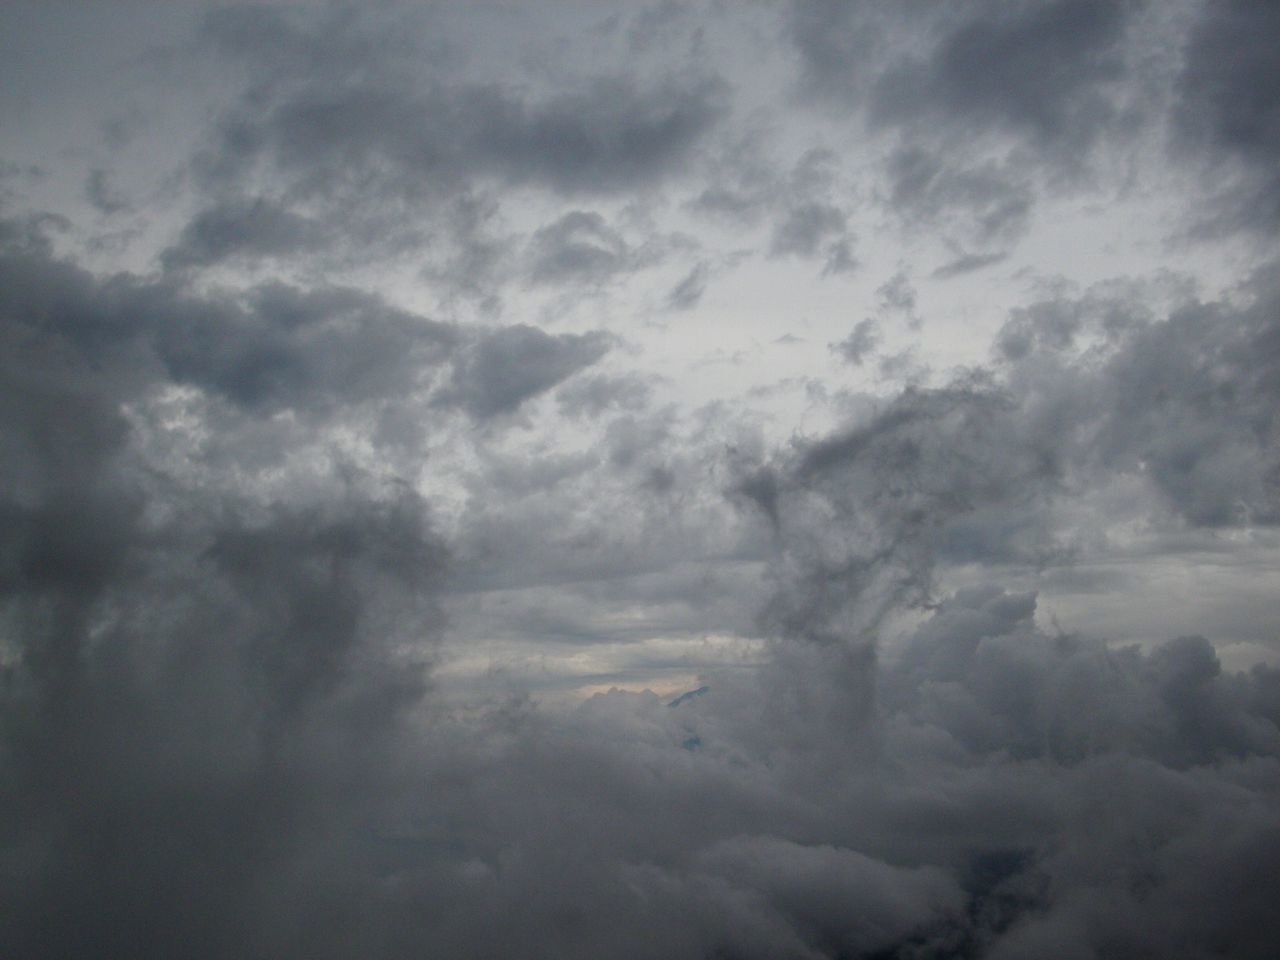 cloud - sky, beauty in nature, nature, weather, cloudscape, sky, atmospheric mood, scenics, sky only, tranquility, backgrounds, low angle view, no people, tranquil scene, storm cloud, full frame, storm, day, outdoors